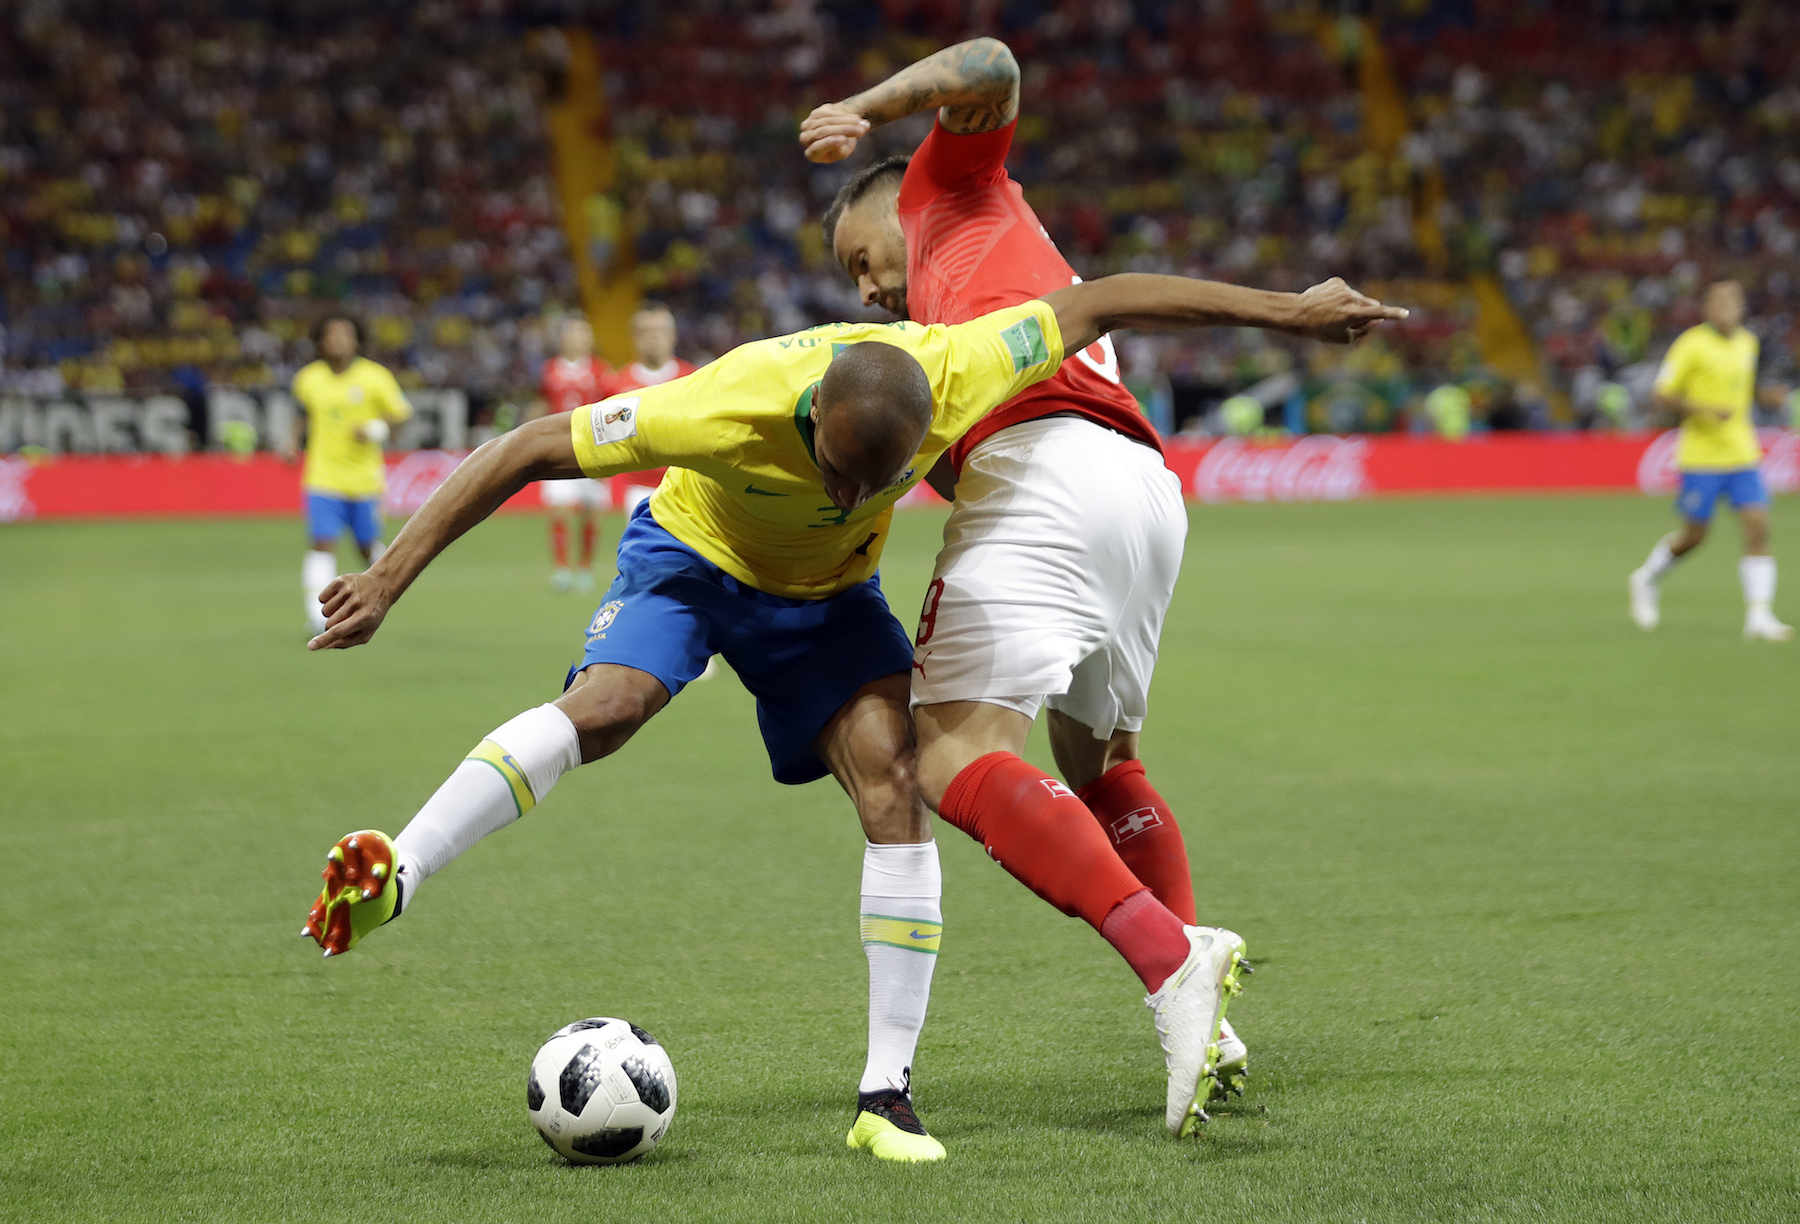 "<div class=""meta image-caption""><div class=""origin-logo origin-image ap""><span>AP</span></div><span class=""caption-text"">Brazil's Miranda, left, and Switzerland's Haris Seferovic challenge for the ball during the group E match between Brazil and Switzerland. (AP Photo/Felipe Dana)</span></div>"